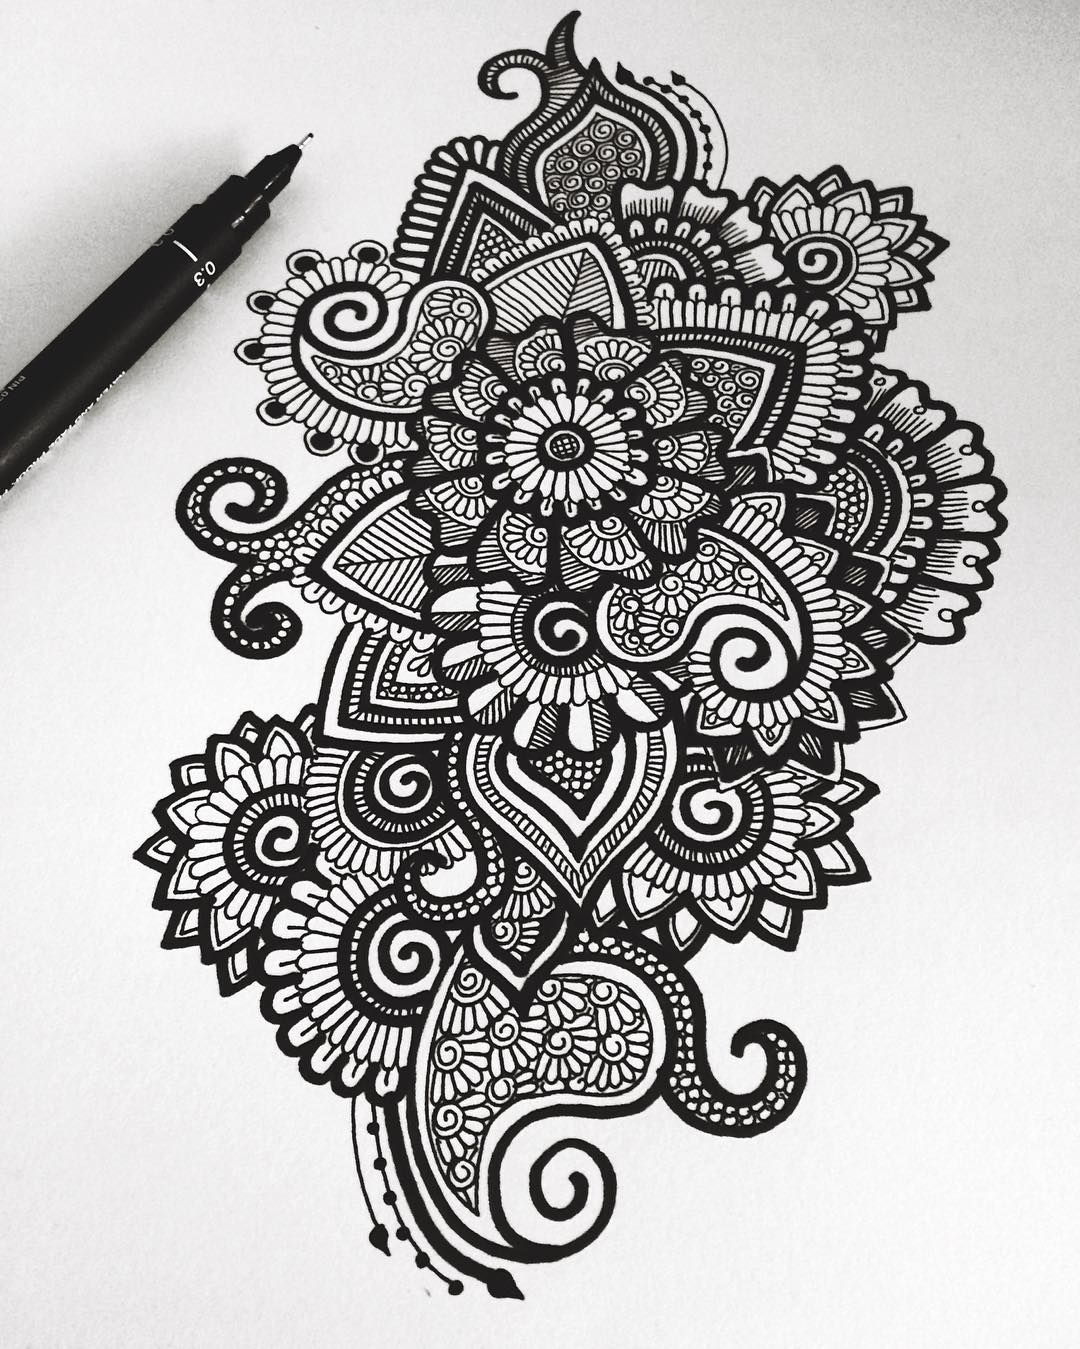 """4,481 Likes, 30 Comments - Simran Savadia (@floral.art) on Instagram: """"Black and white doodle   Hope everyone is having an awesome day!❤️ -♡-…"""""""